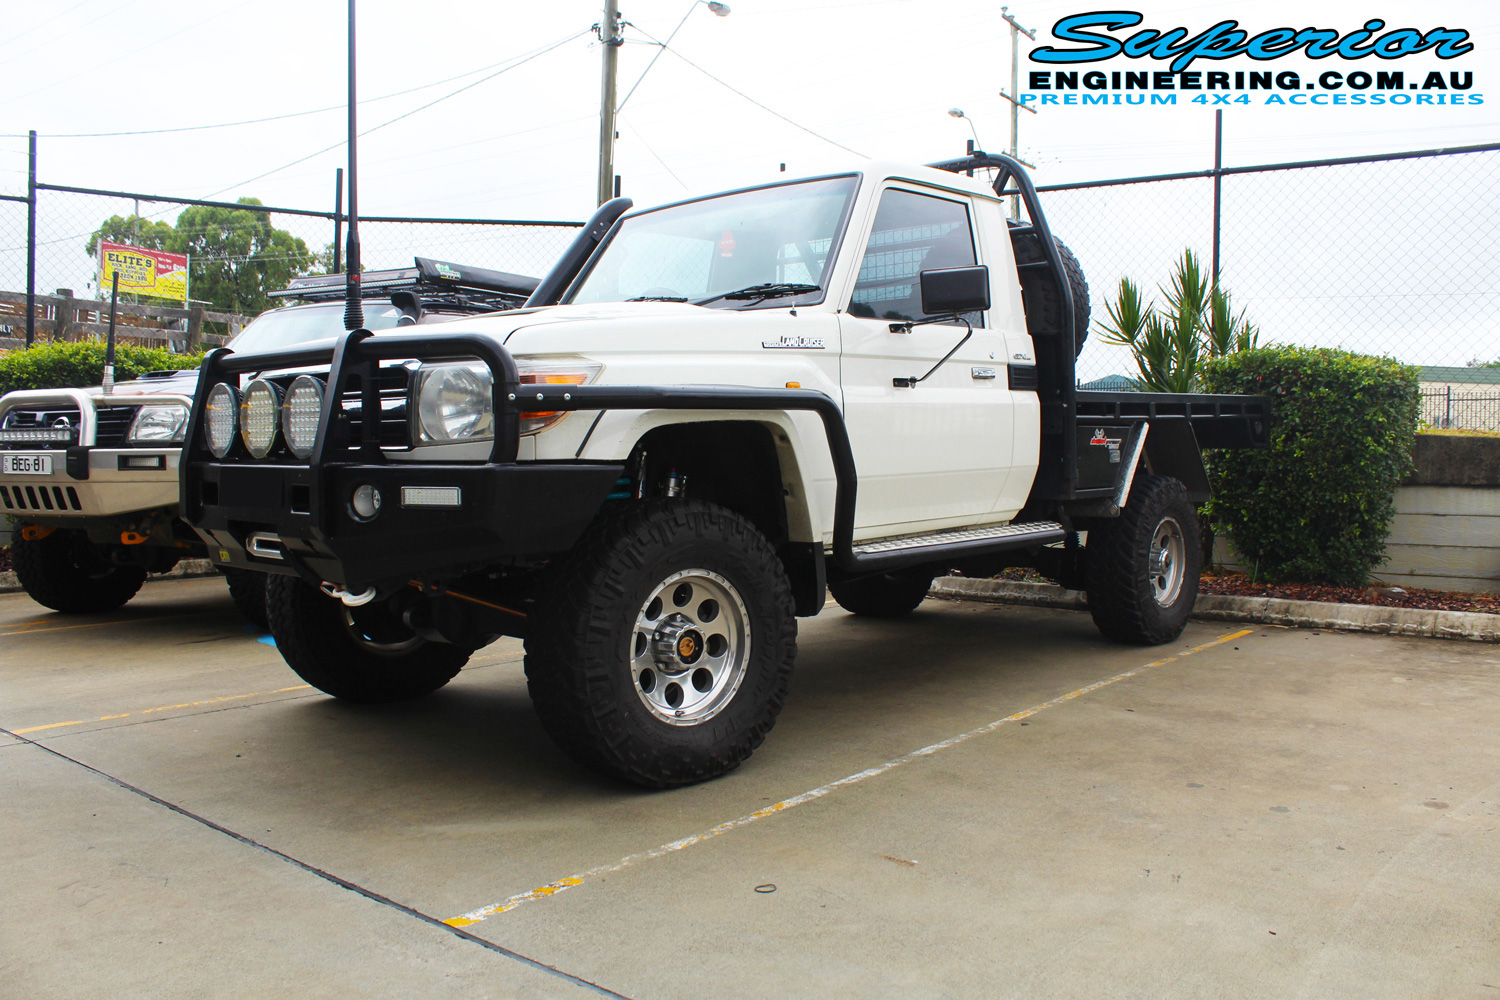 "Front right view of a white single cab 79 Series Toyota Landcruiser after fitting a 4"" inch Superior Remote Reservoir Superflex Kit + Tru Tracker Kit"